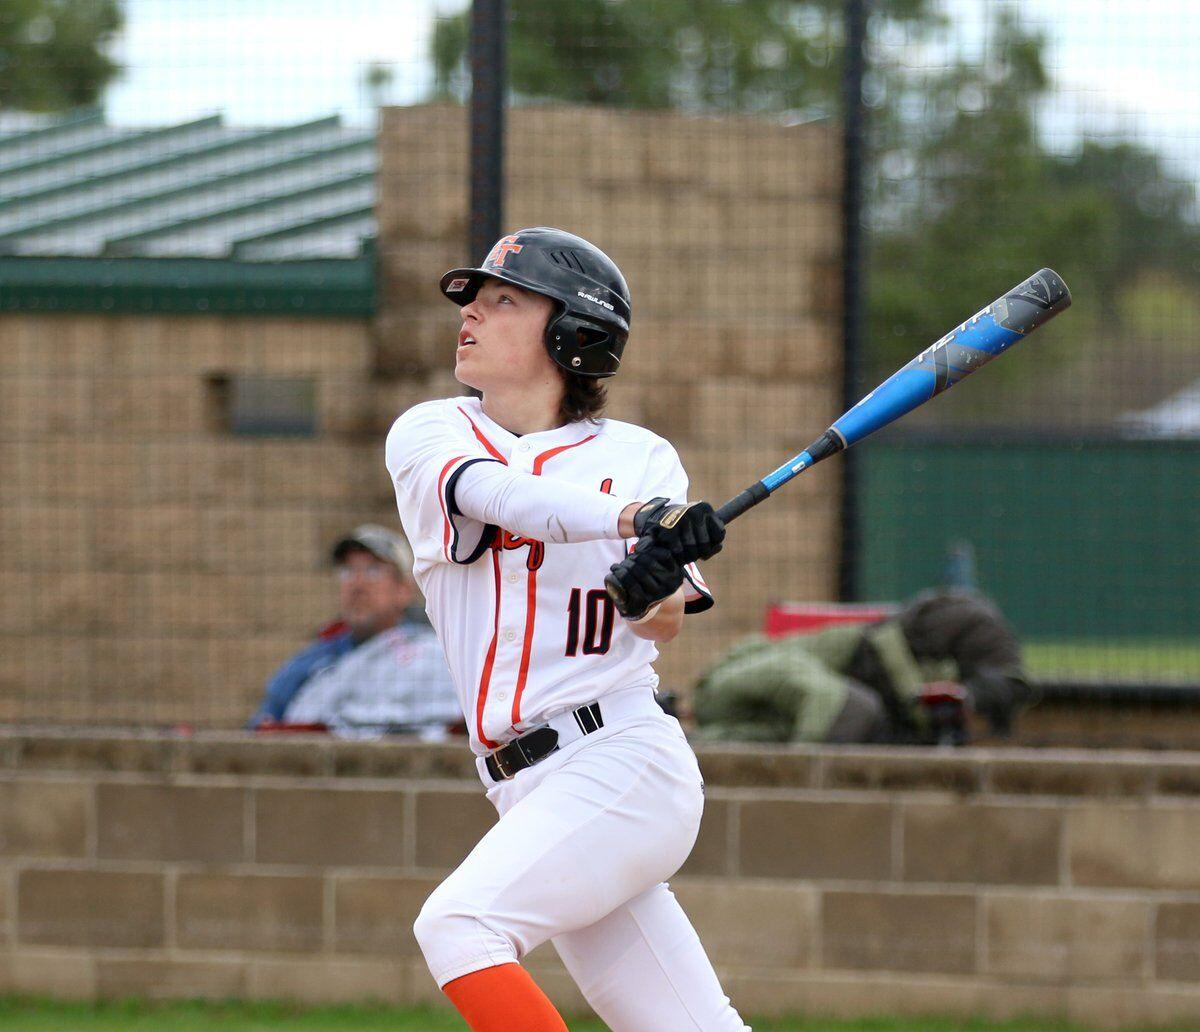 Tigers fall twice: Skiatook sweeps Tuesday doubleheader in Tahlequah